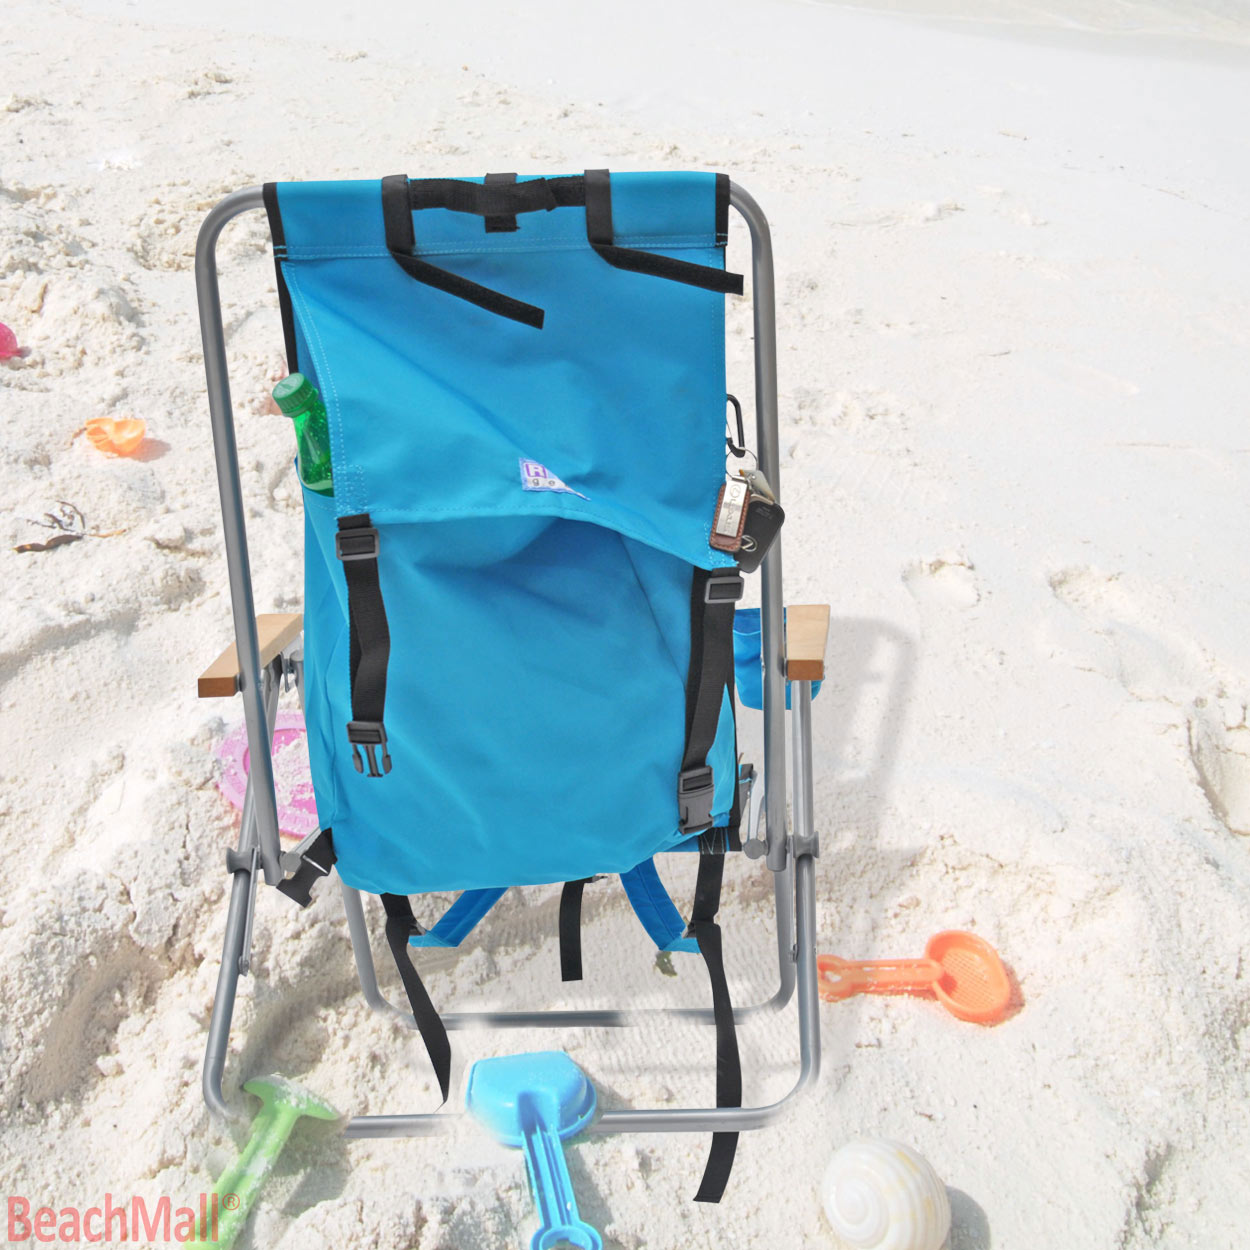 Set Of 2 Steel Rio Backpack Beach Chair Camping Chair With 6 Ft